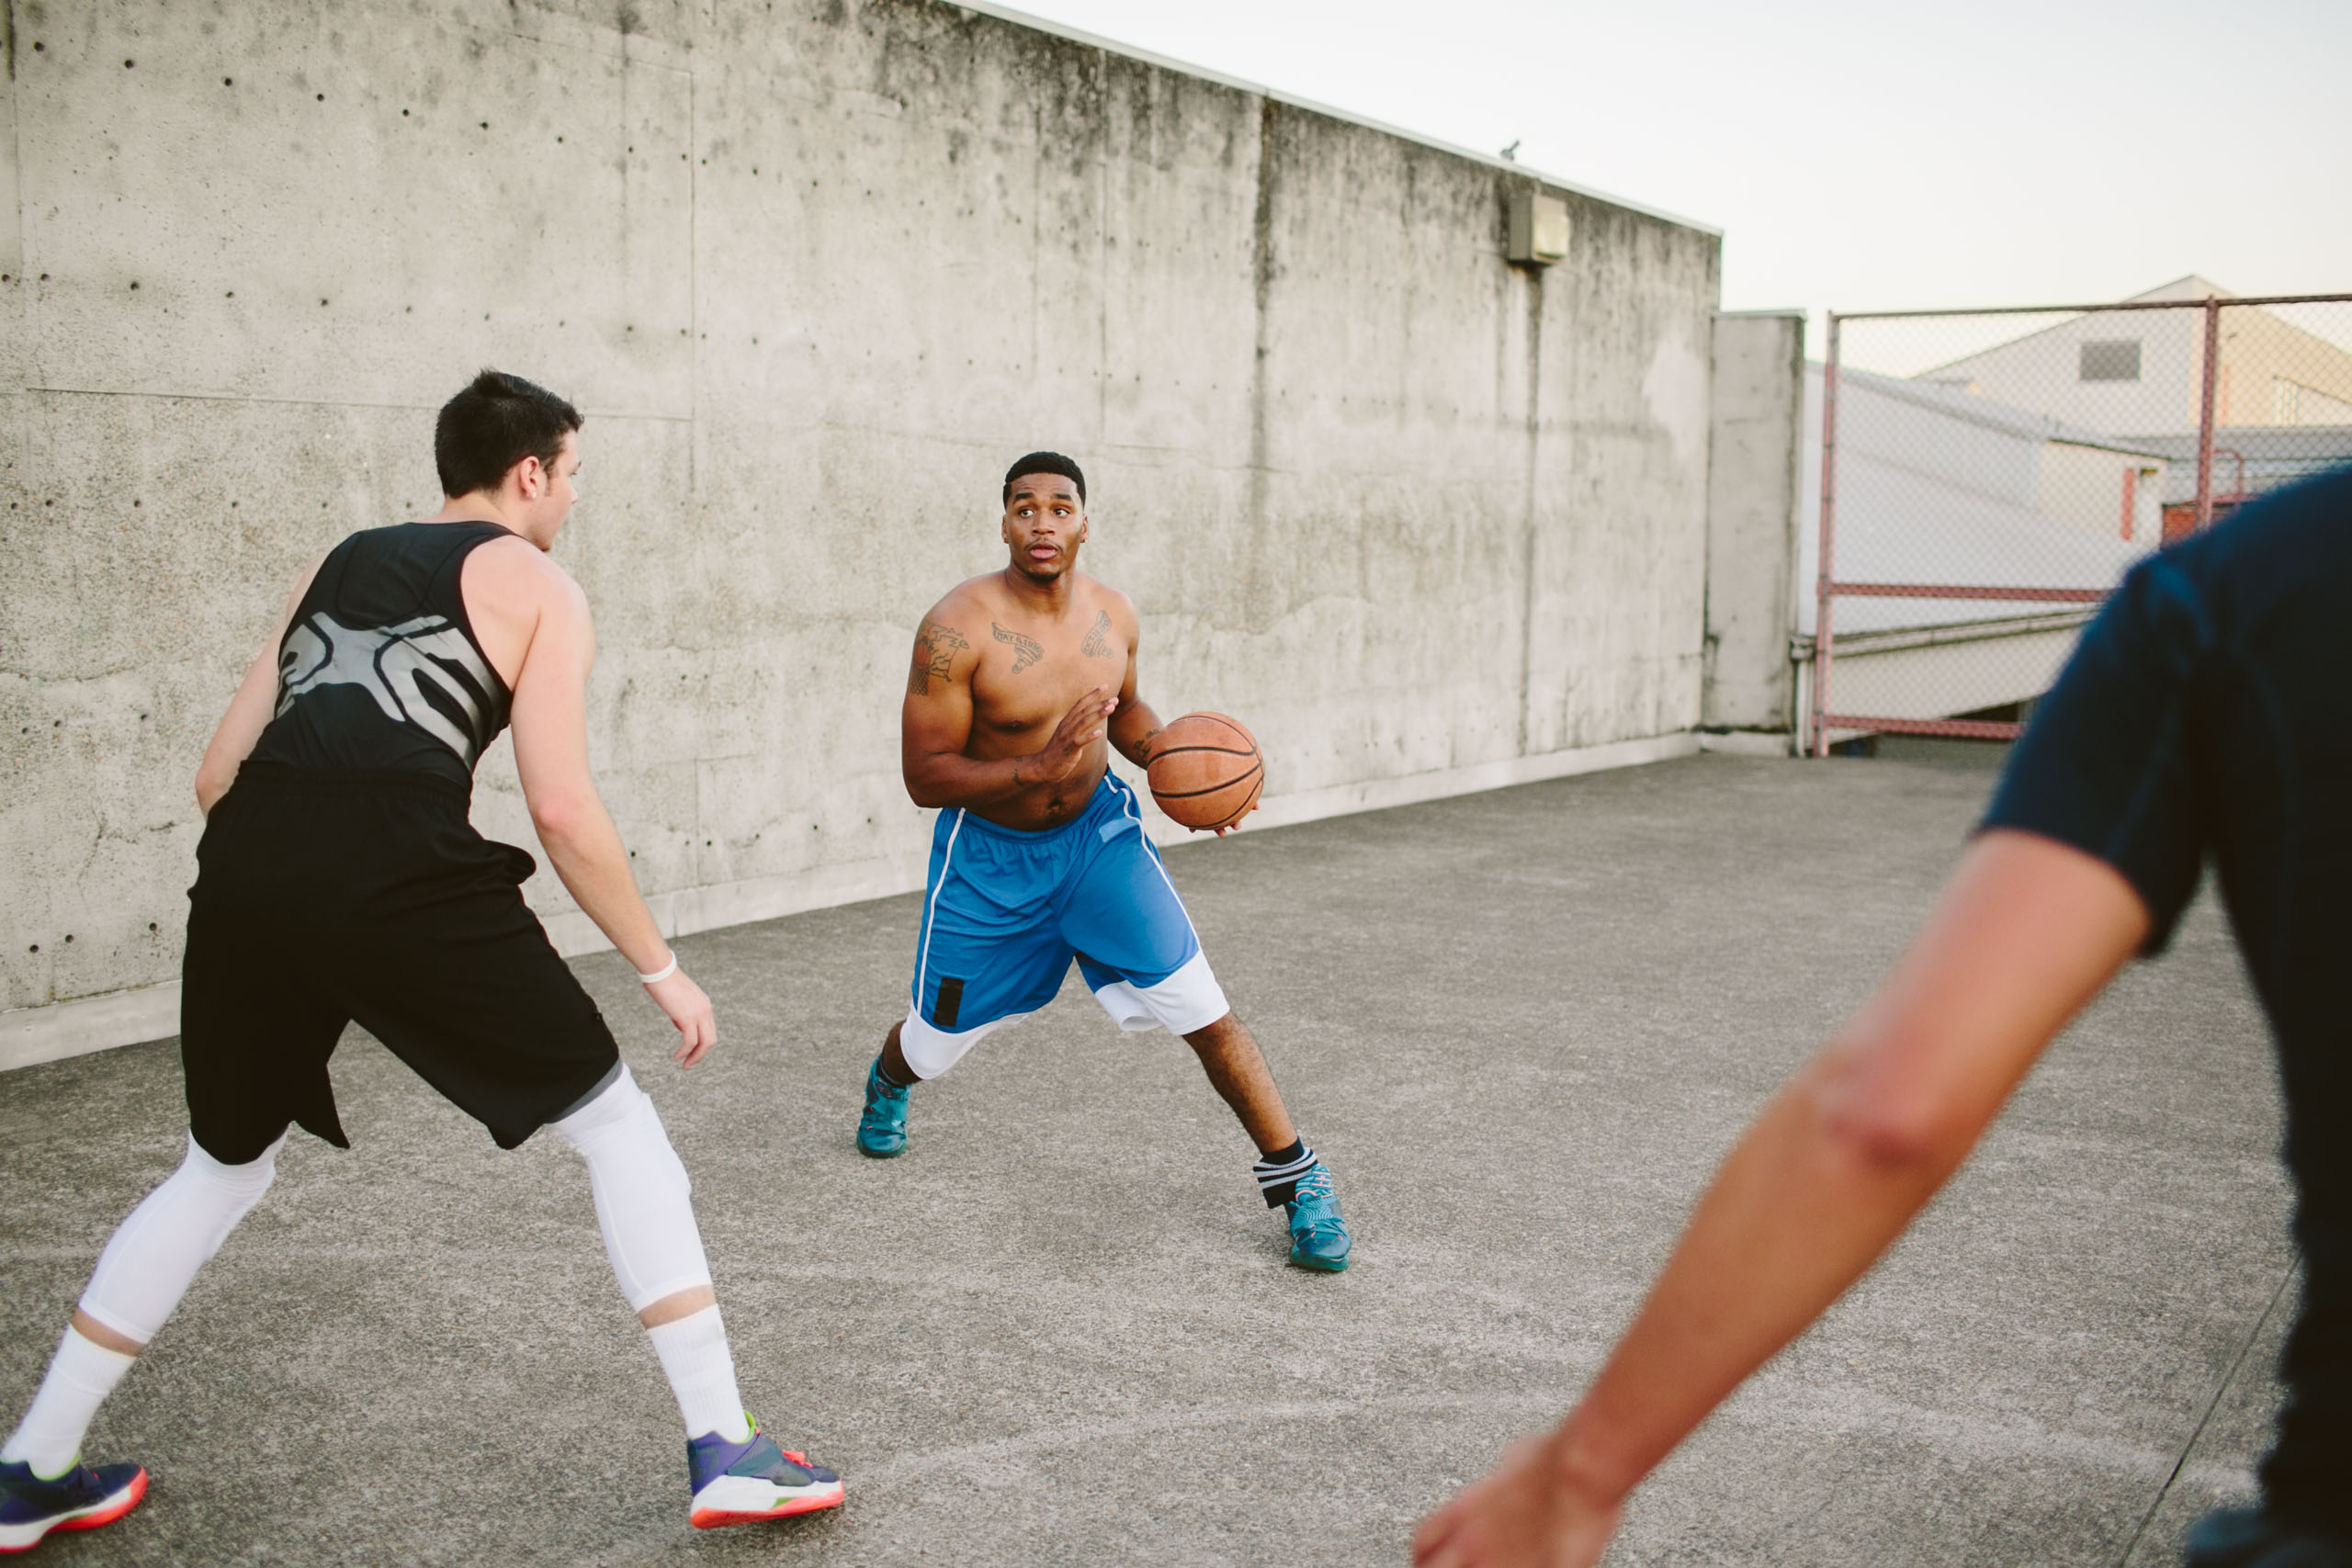 Group of men play basketball